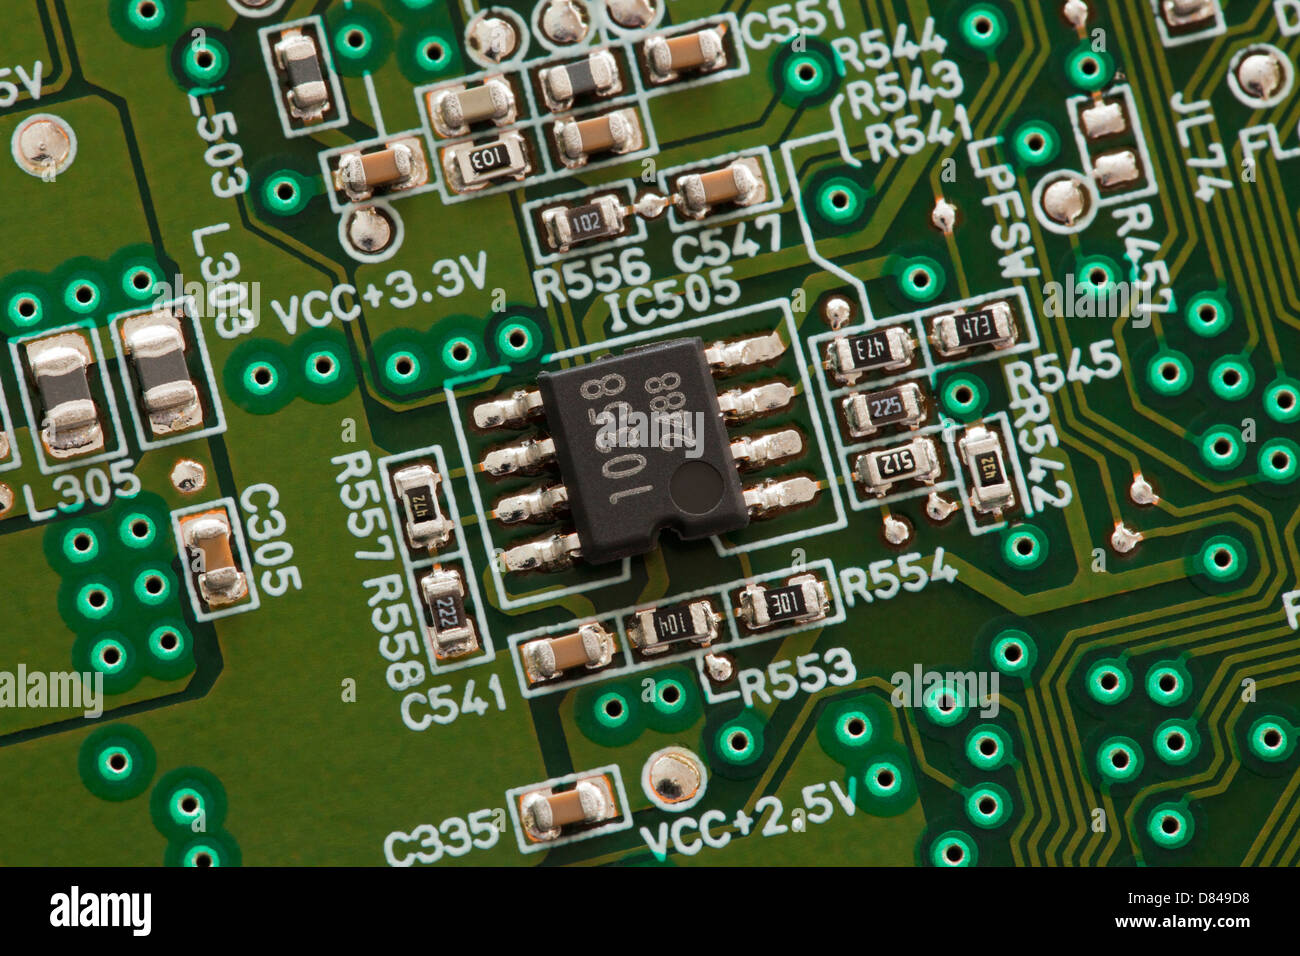 Ic Chip Stock Photos Images Alamy Icintegrated Circuit Component Electronic On Board Image